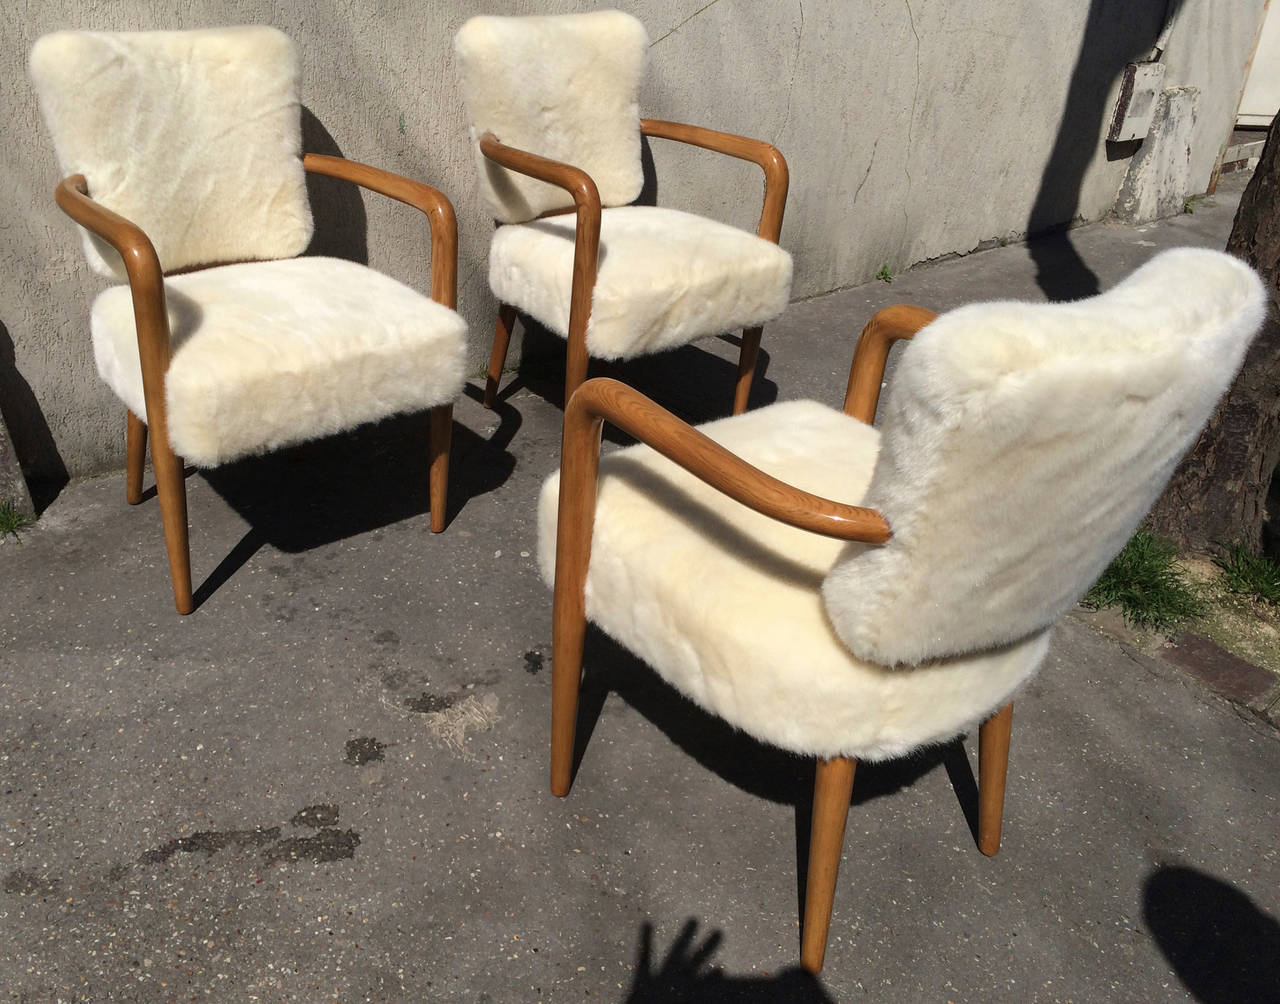 Fur Desk Chair Renou Et Genissetrare Set Of Three Desk Chairs Newly